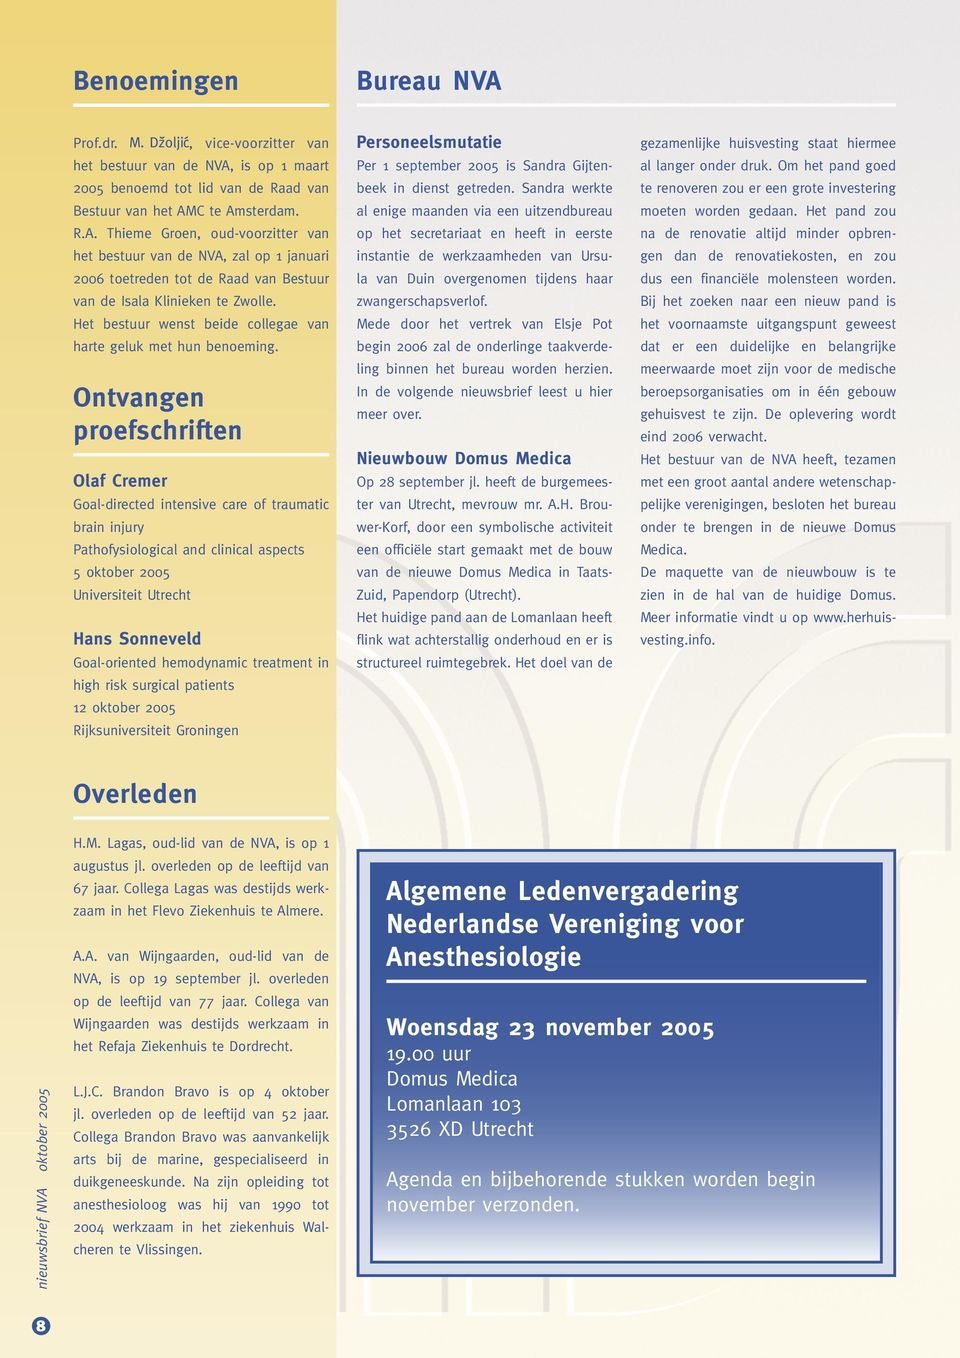 Ontvangen proefschriften Olaf Cremer Goal-directed intensive care of traumatic brain injury Pathofysiological and clinical aspects 5 oktober 2005 Universiteit Utrecht Hans Sonneveld Goal-oriented